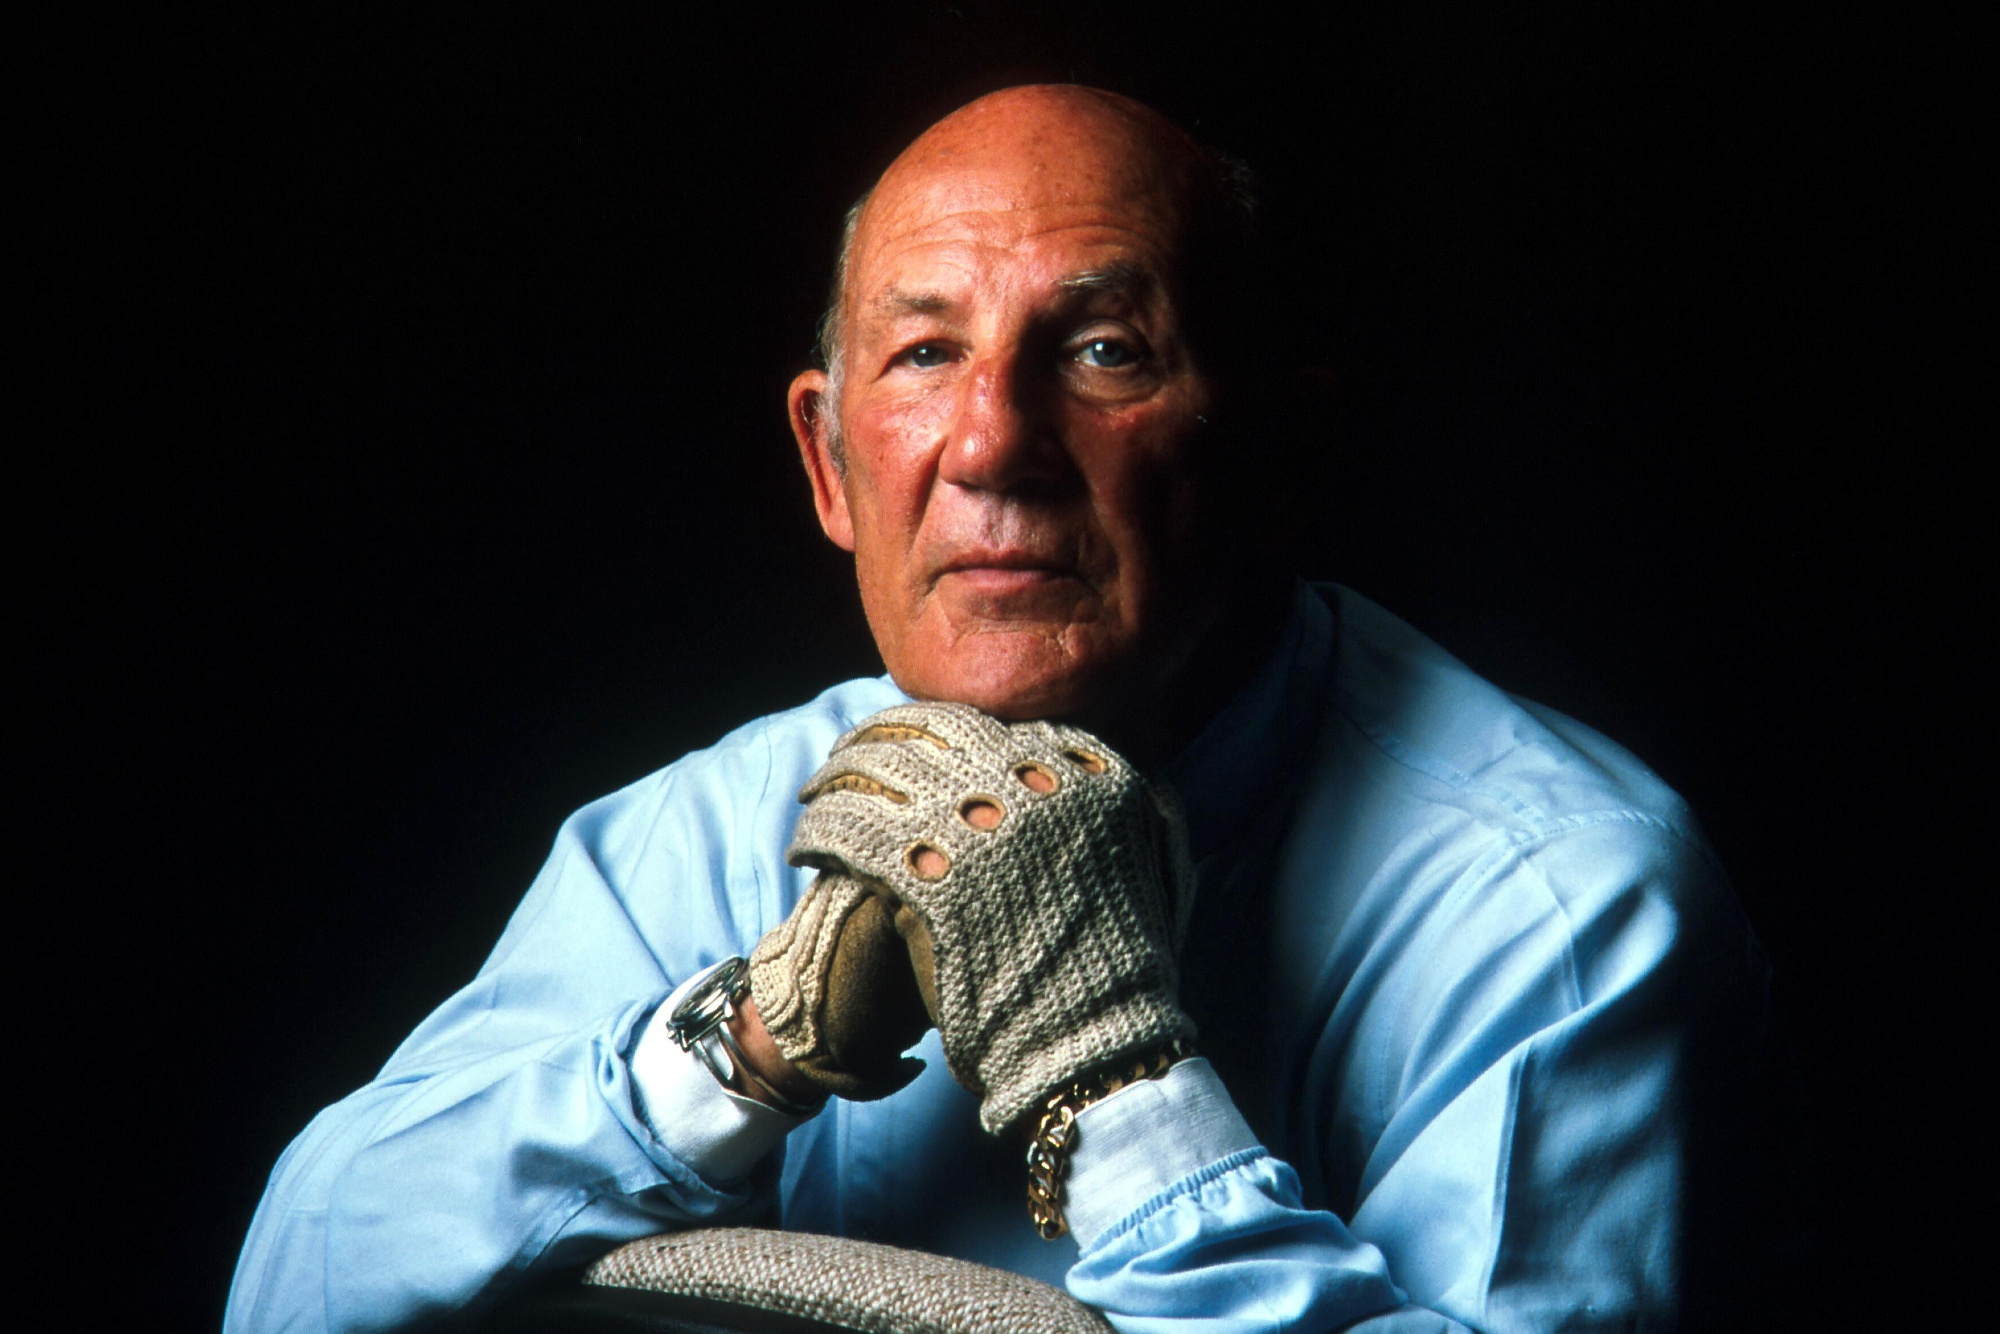 Is this the magazine cover that secured Stirling Moss a knighthood?